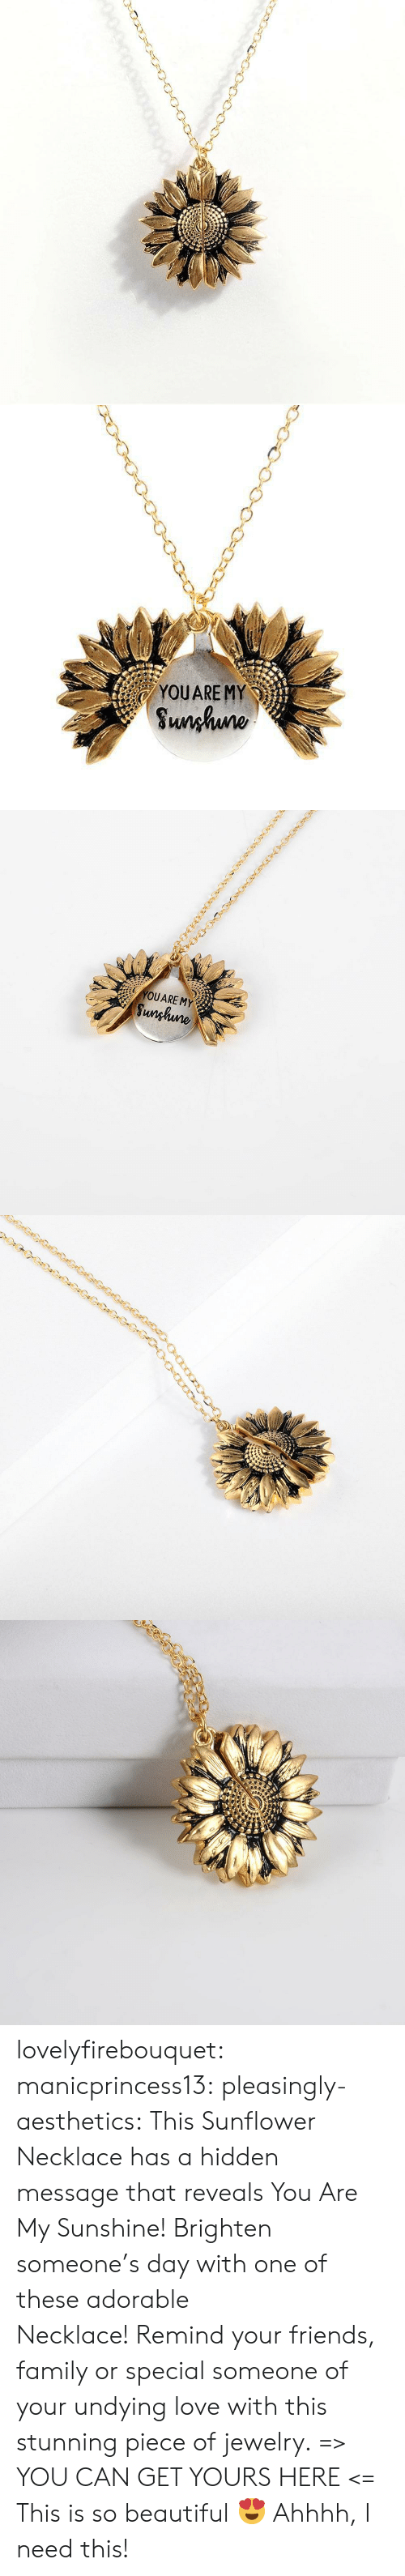 I Need This: YOUARE MY  Sunhuno   YOUARE MY  Sunghune lovelyfirebouquet:  manicprincess13: pleasingly-aesthetics:  This Sunflower Necklace has a hidden message that reveals You Are My Sunshine! Brighten someone's day with one of these adorable Necklace!Remind your friends, family or special someone of your undying love with this stunning piece of jewelry. => YOU CAN GET YOURS HERE <=   This is so beautiful 😍   Ahhhh, I need this!